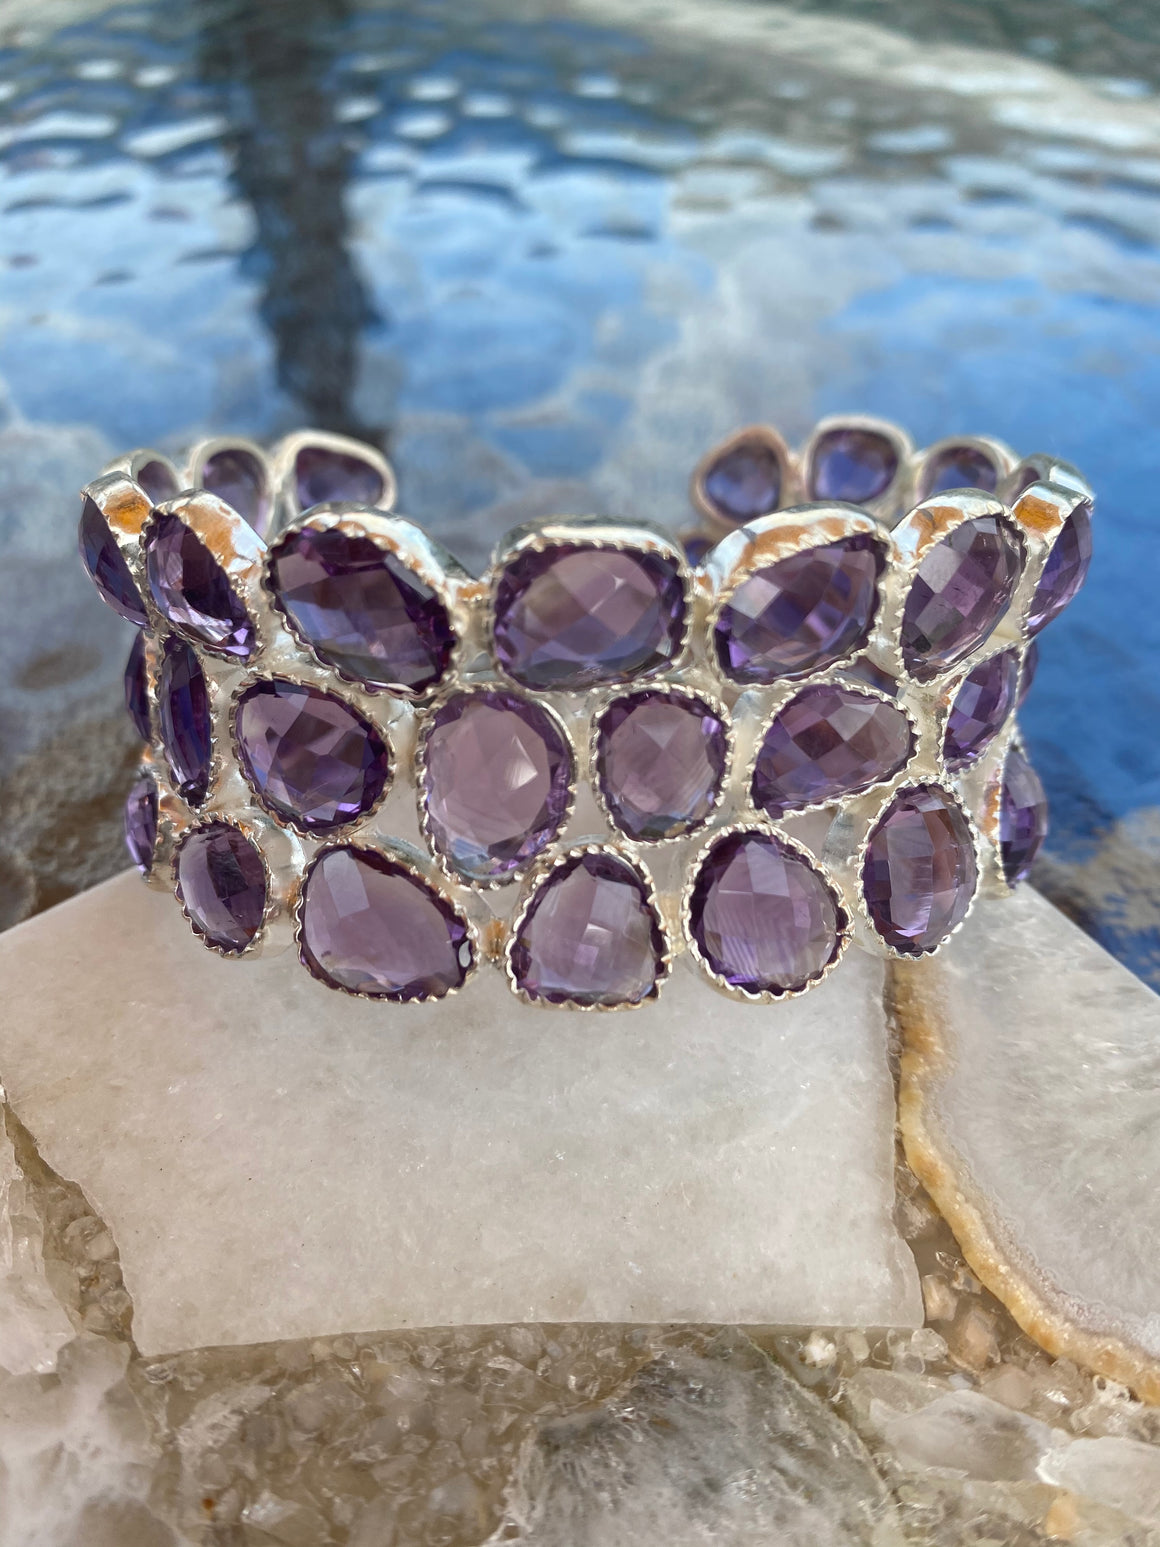 Ulka Rocks - Alton Collection - Gemstone Sterling Silver Cuff - Multiple stones available